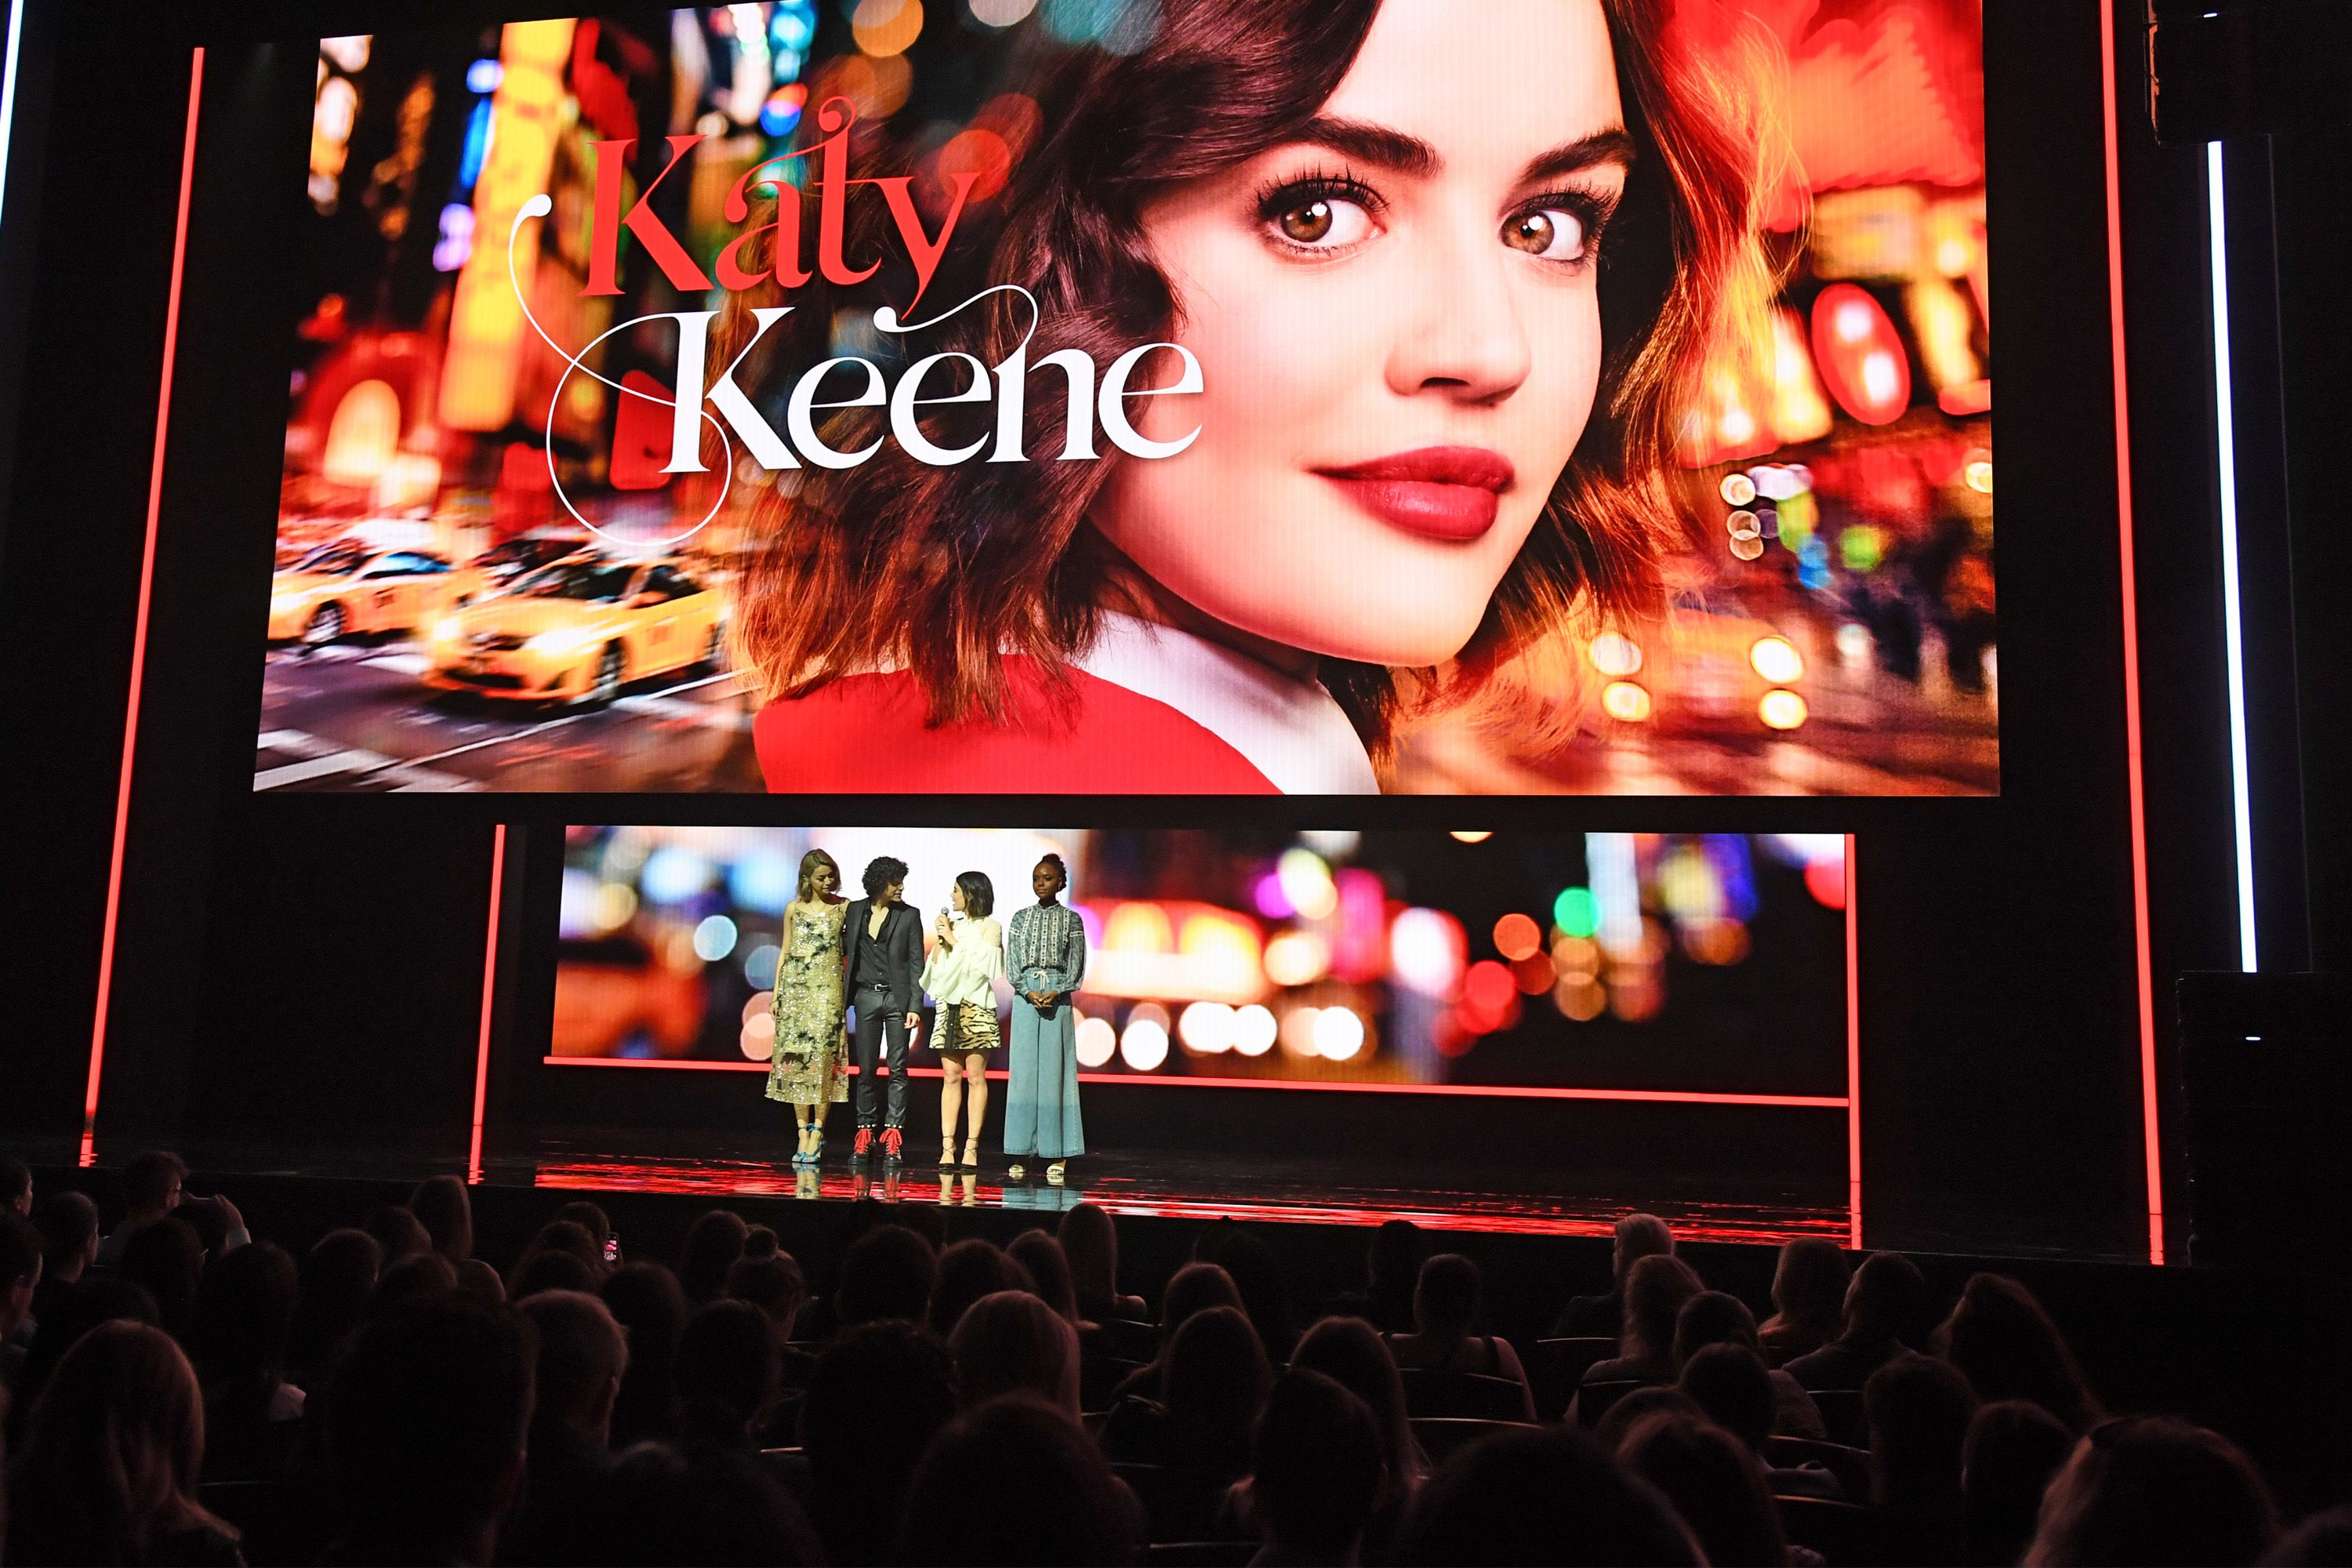 TV networks pitch brand safety, streaming to advertisers at upfronts